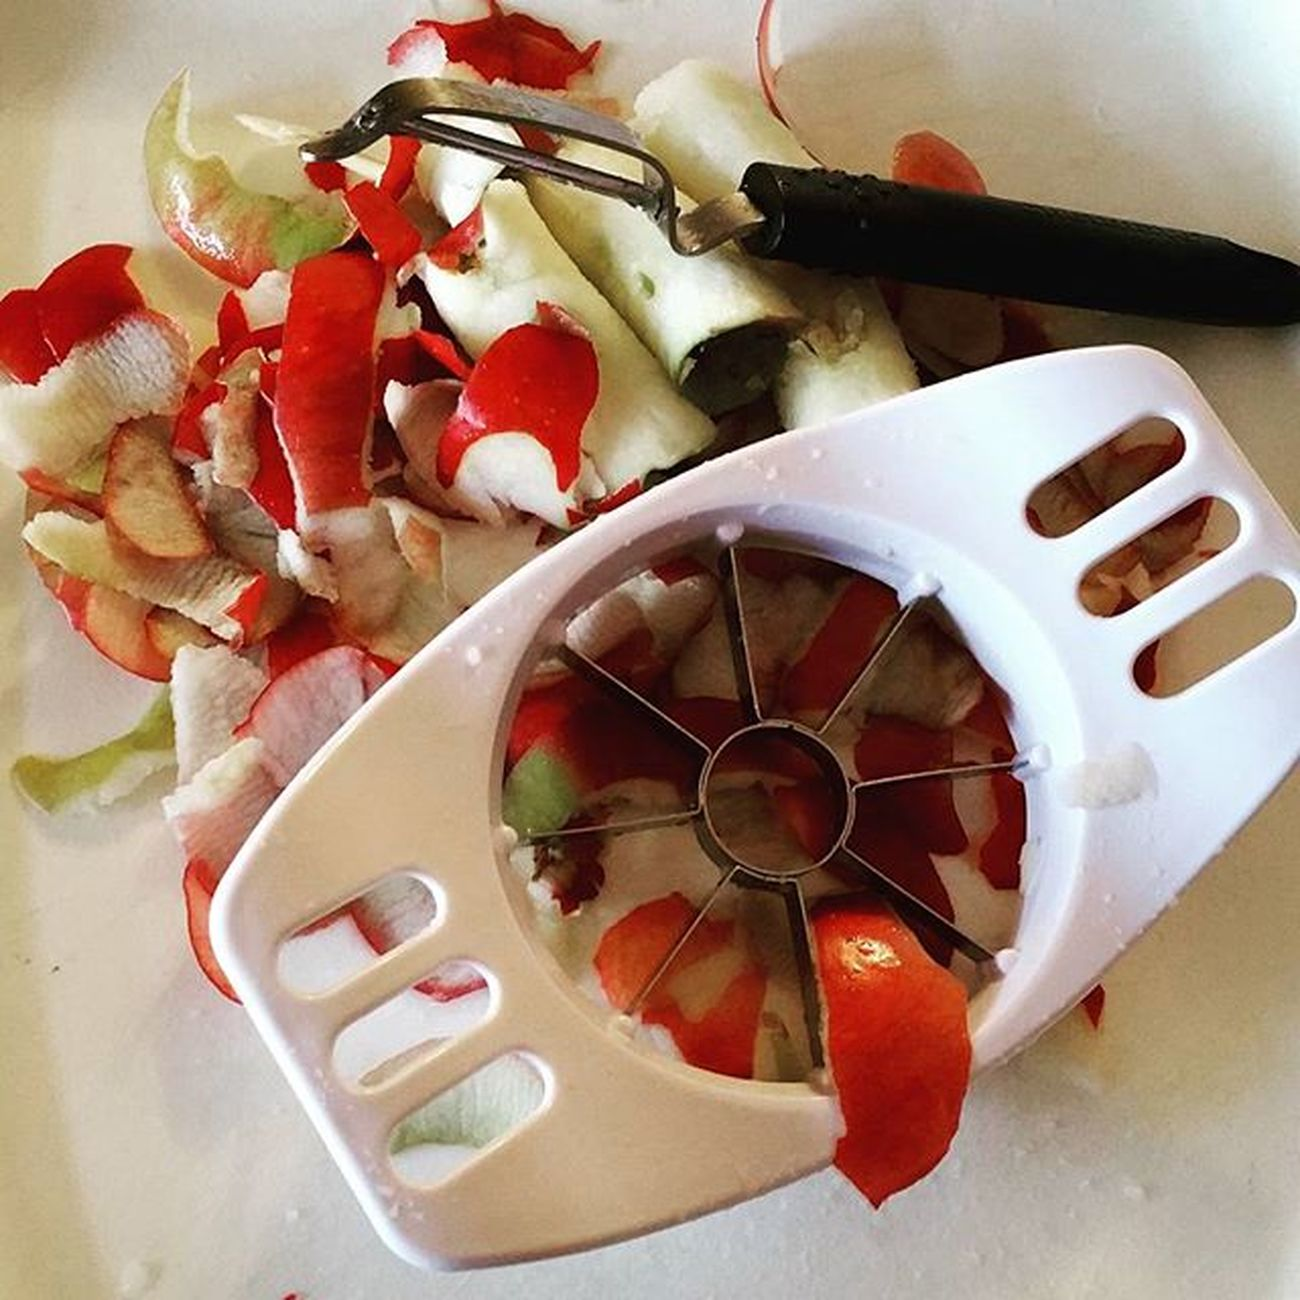 Making apple pie? Instead of throwing away those cores and peels, grab and do the following... GRAB: Cheese cloth Two handful of colorful leaves 1 tbl of cinnamon 1 tsp of nutmeg 1 tbl of brown sugar DO: 1. Mix left over apple peels and cores in a bowl with your spices and sugar. 2. Place leaves in cheese cloth and put apple mixture on top. 3. Tie up cheese cloth with a decorative bow. You have a potpourri pouch for the day! The scent will carry through the room. Thanksgiving Potpourri Apples Applepie Fall MarthaStewart DIY Homecook Instafood Ideas Instaphoto Foodography Foodnetwork Real_simple Thanksgiving2015 Thecrazypalate